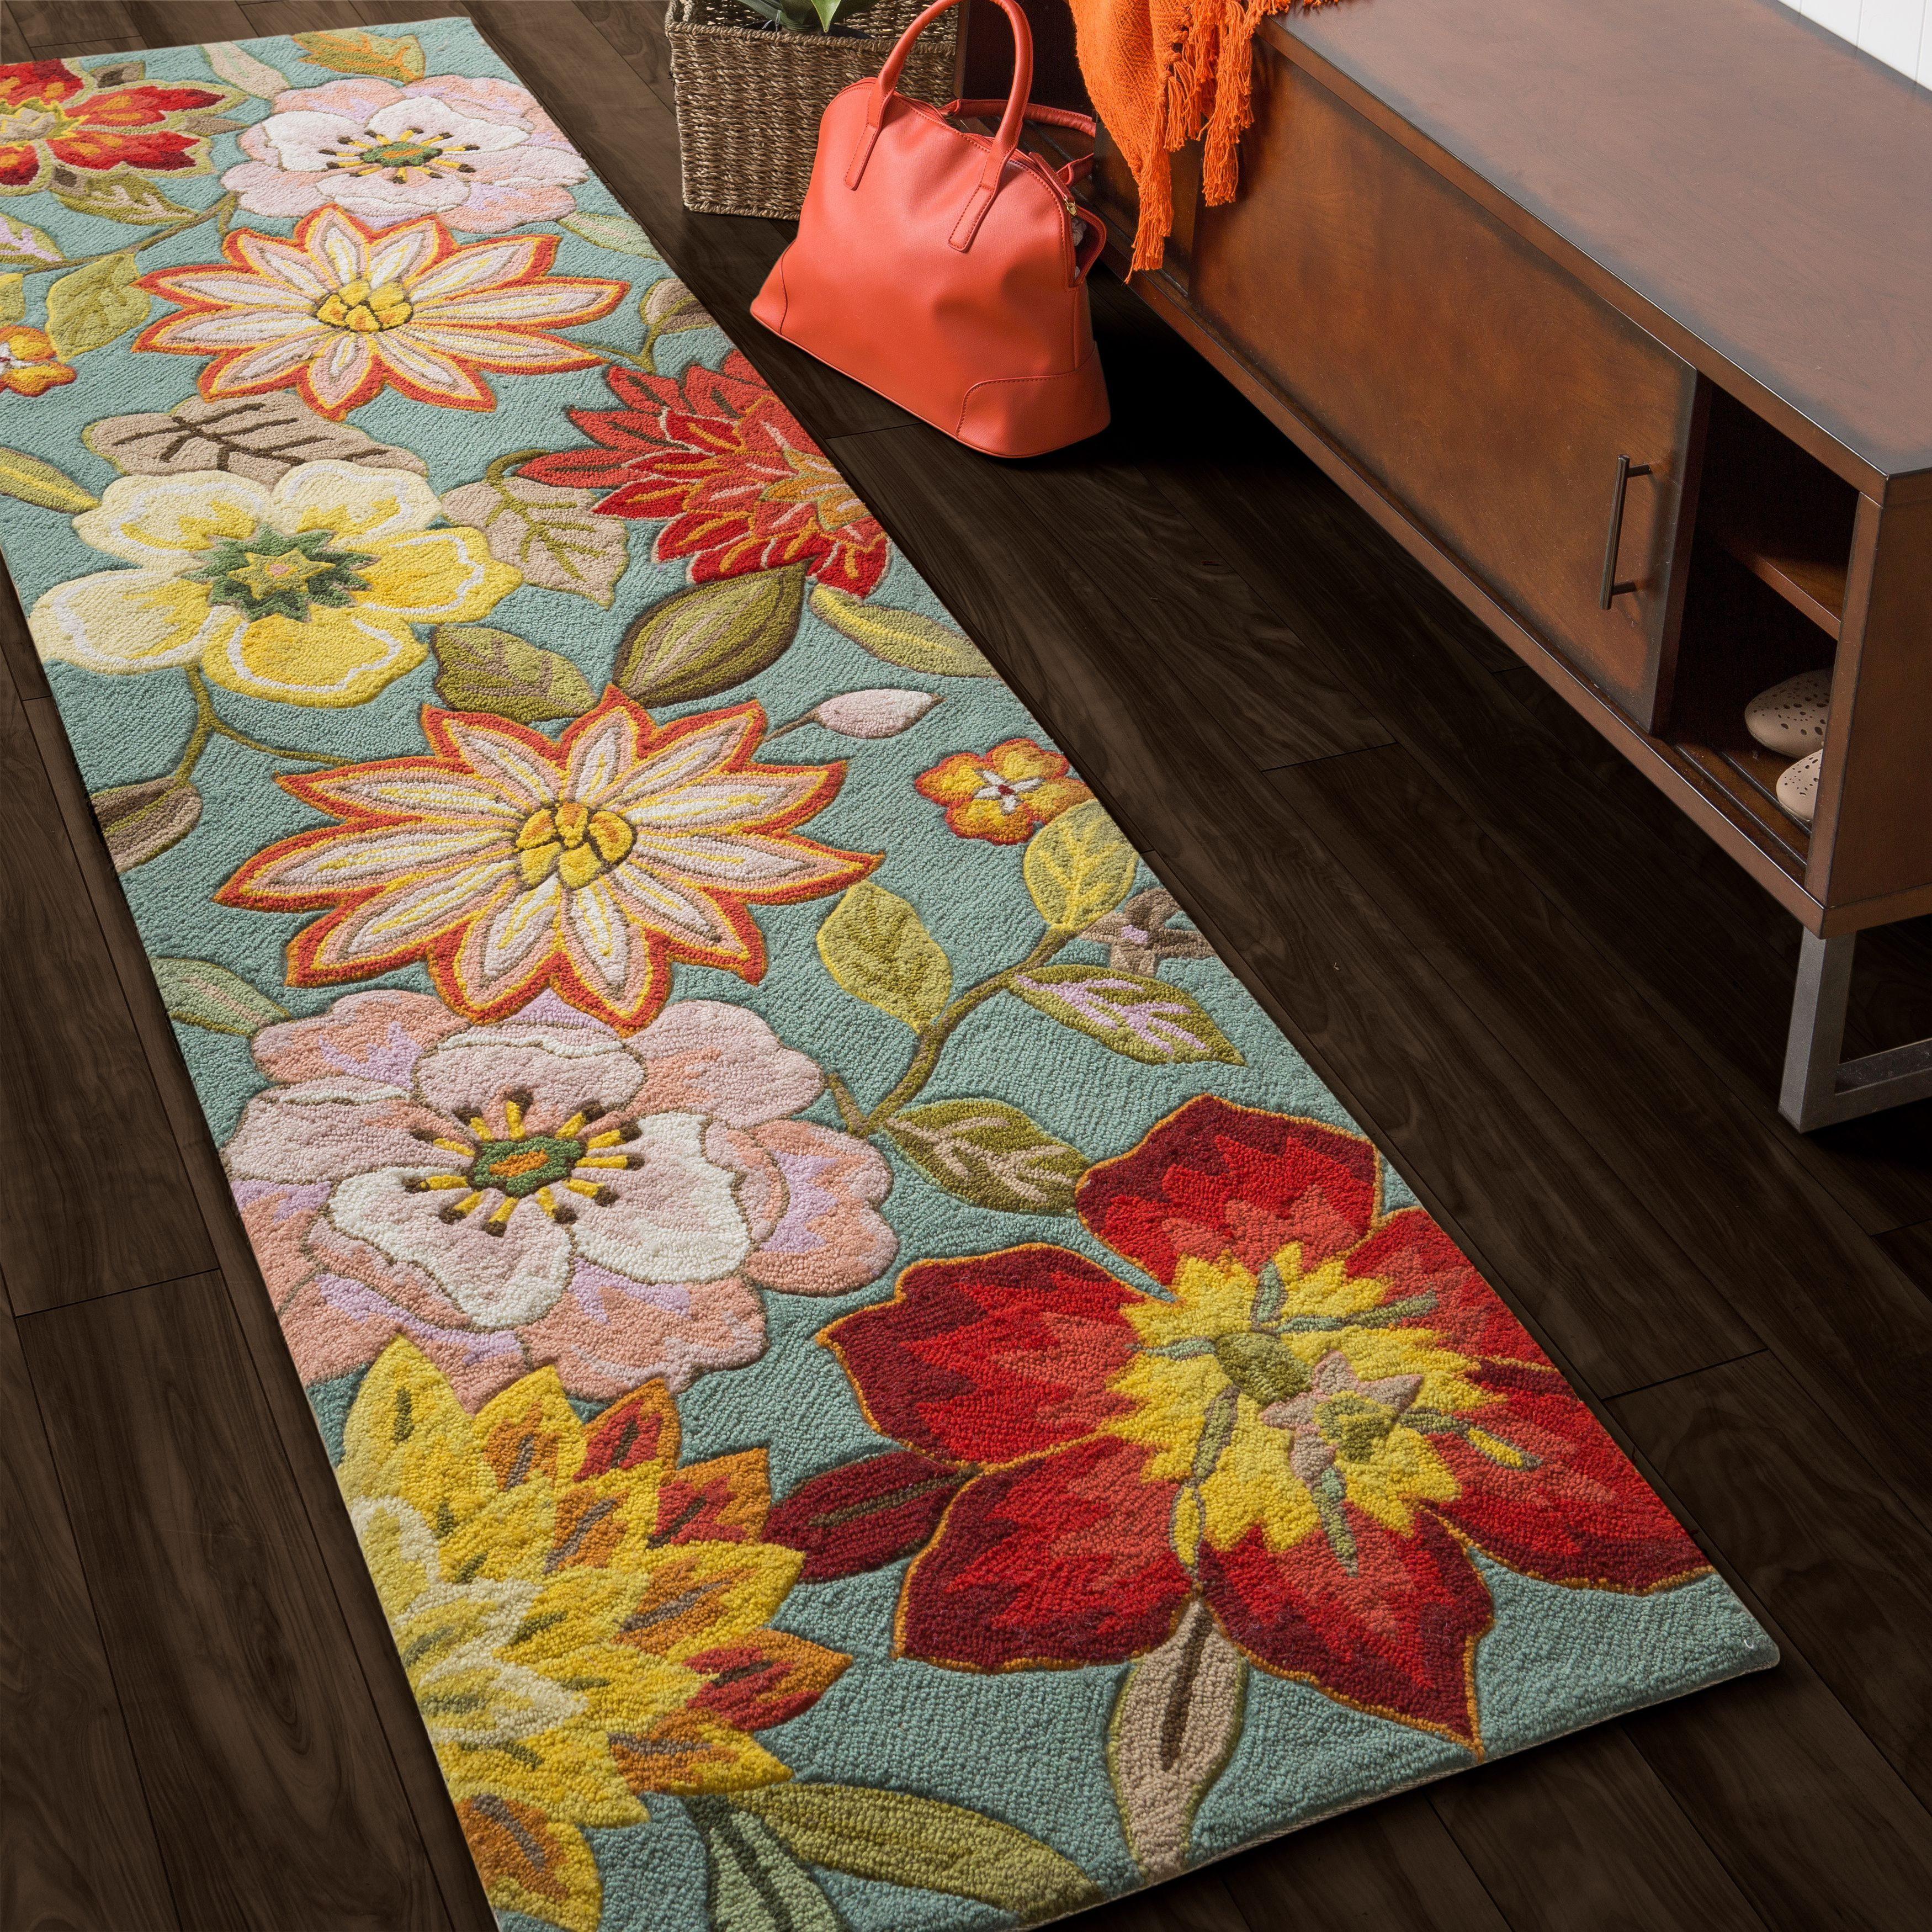 Rug Elegant Floor Decorating Ideas With Cool Overstock: Give Your Floors An Elegant Update With This Floral Runner